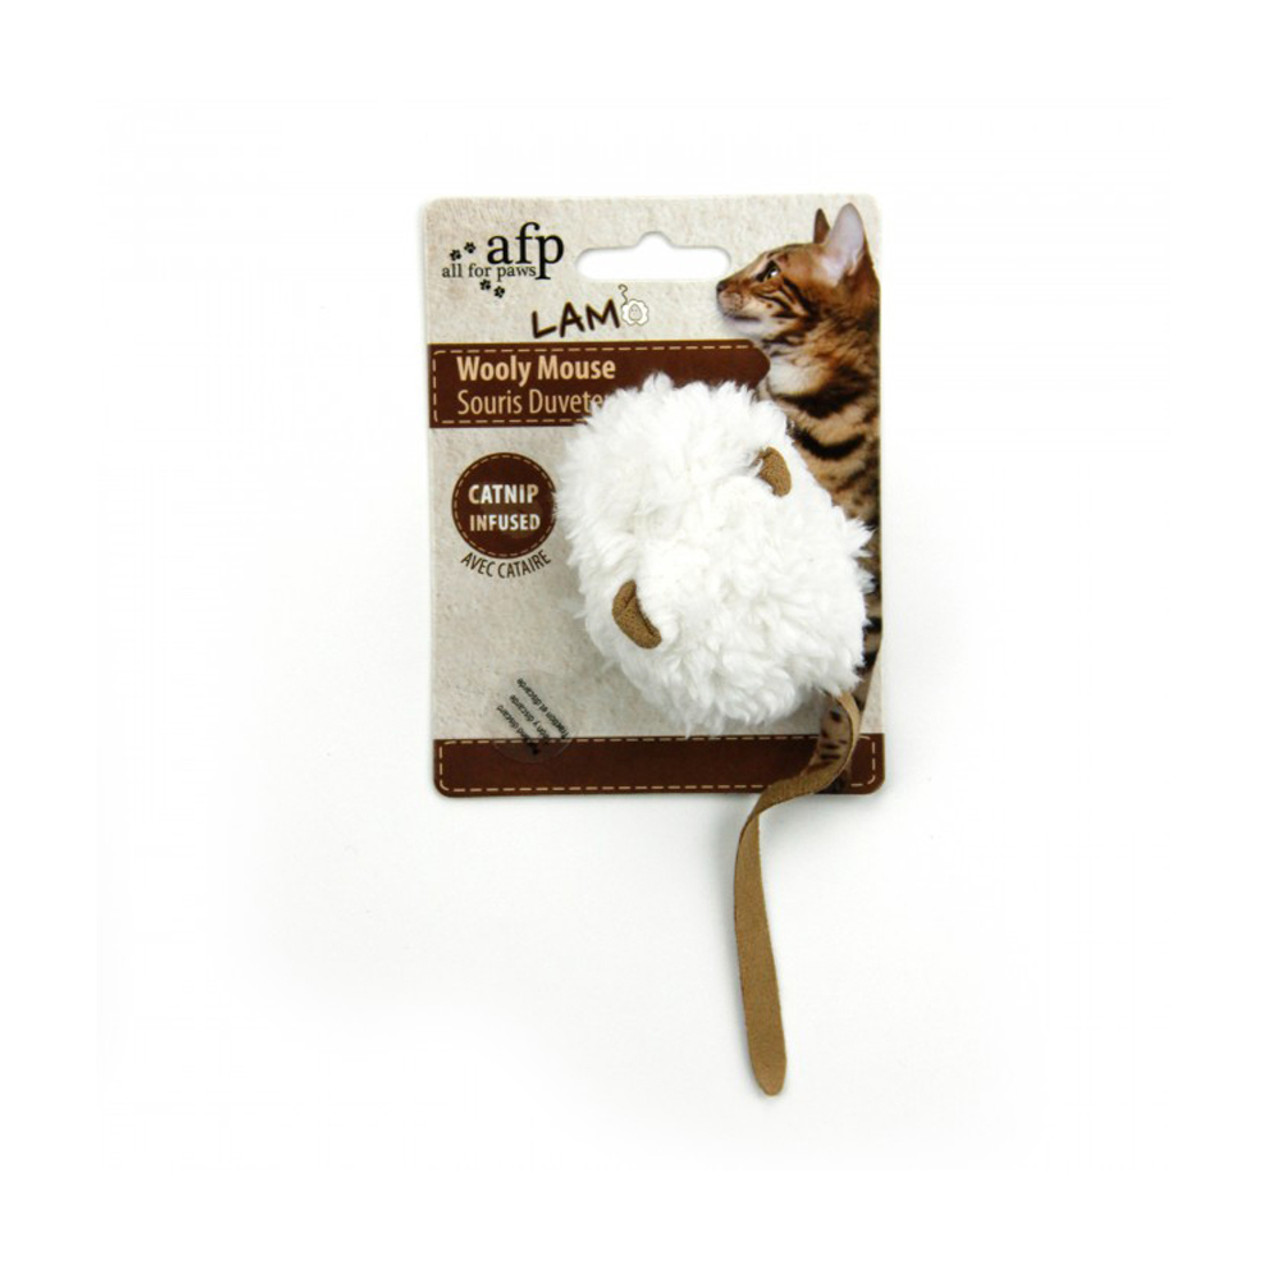 All For Paws Lamb Wooly Mouse Cat Toy